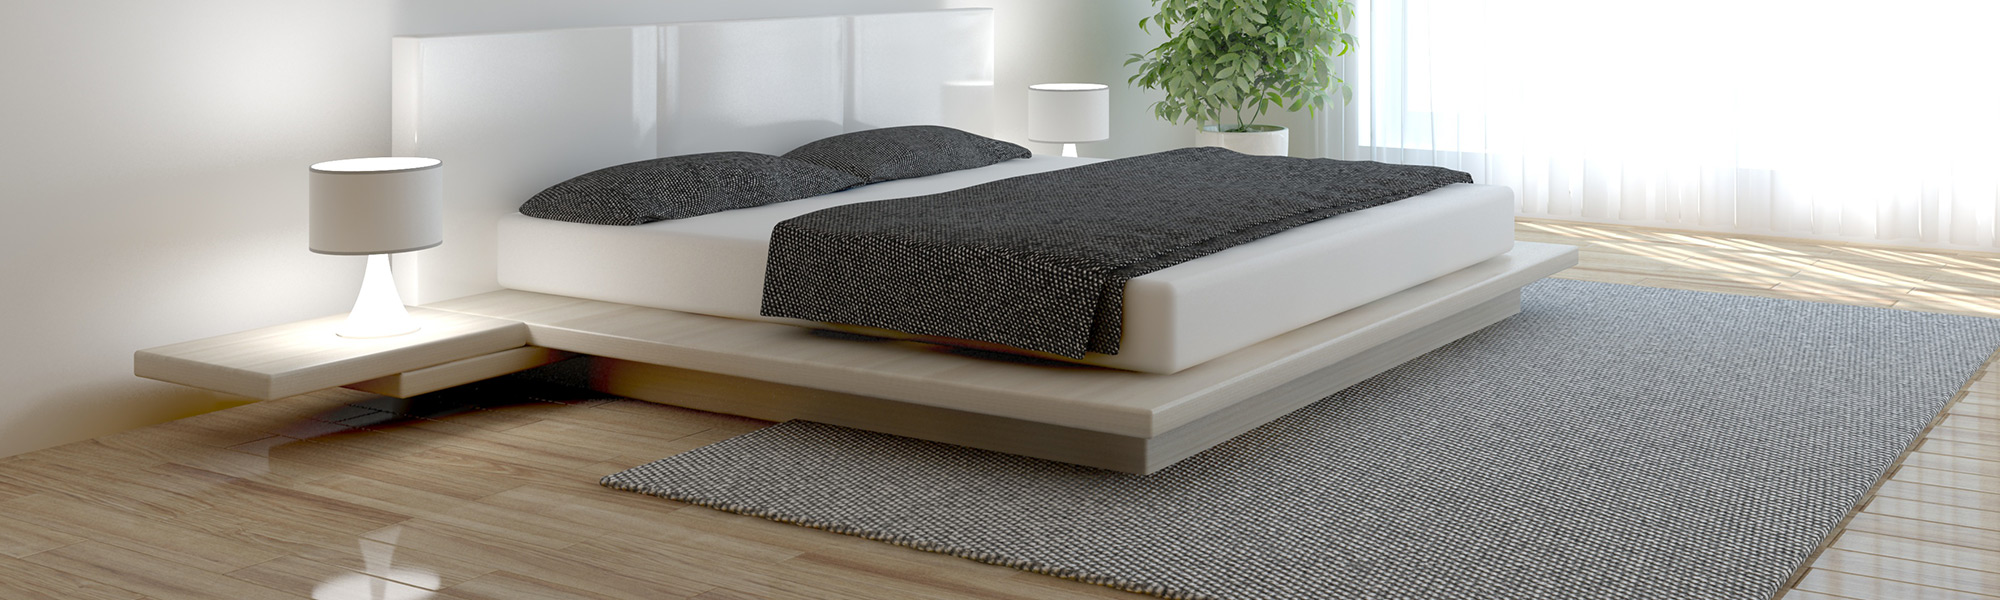 Bed Sizes & Mattress Sizes in the UK